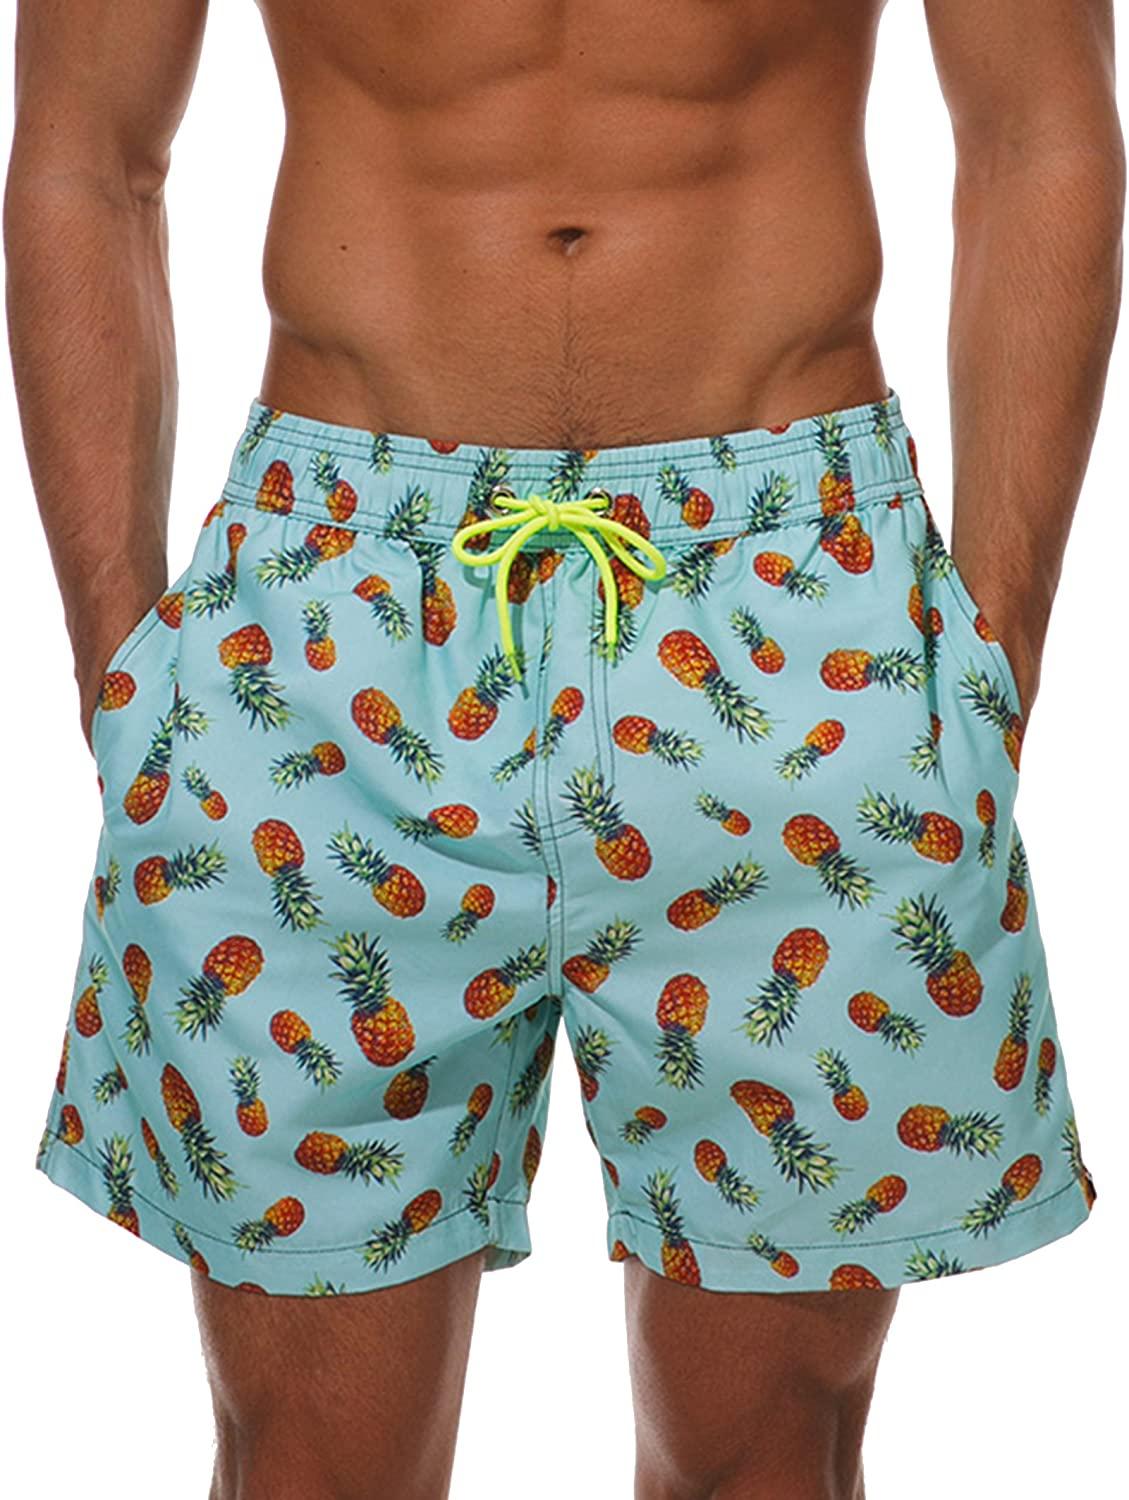 WEVIAS Mens Short Swim Trunks Quick Dry Breathable Sports Beach Surfing Running Swimming Board Shorts Mesh Lining